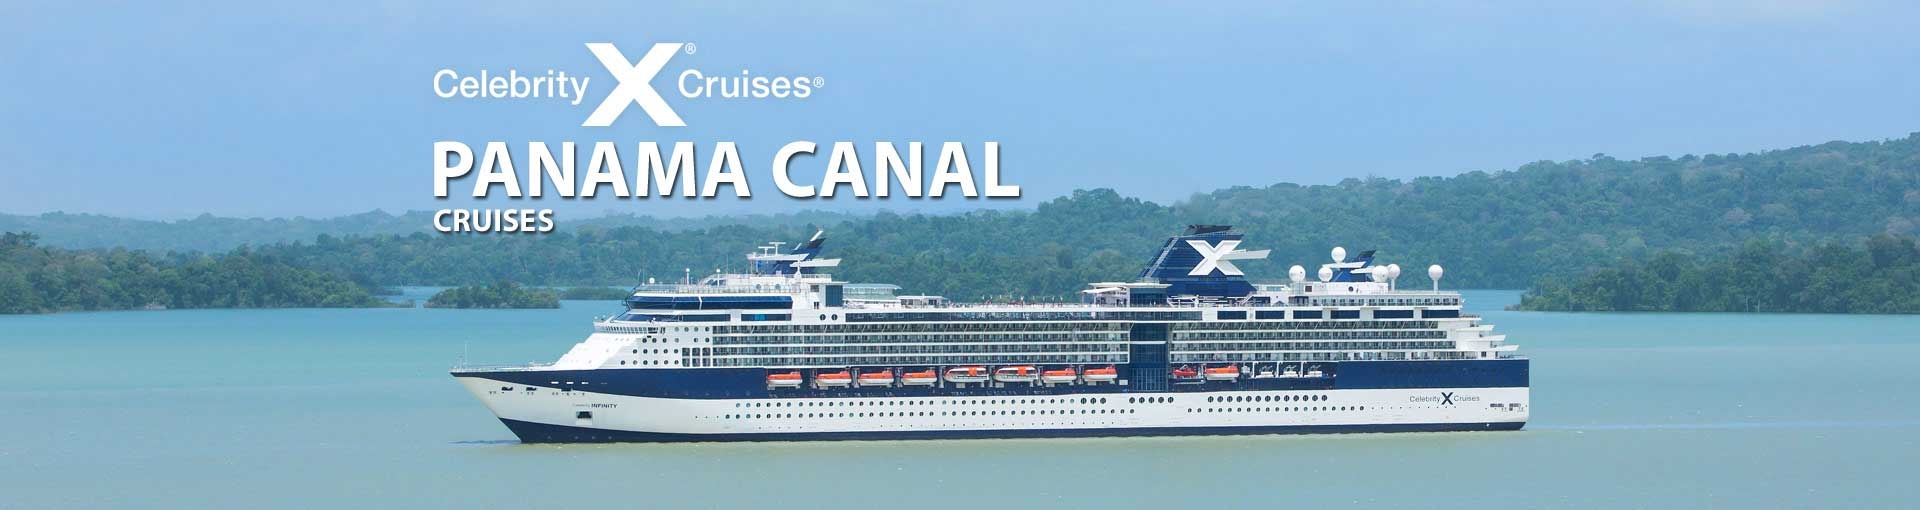 5 Best Panama Canal & Central America Cruises 2019 (with ...